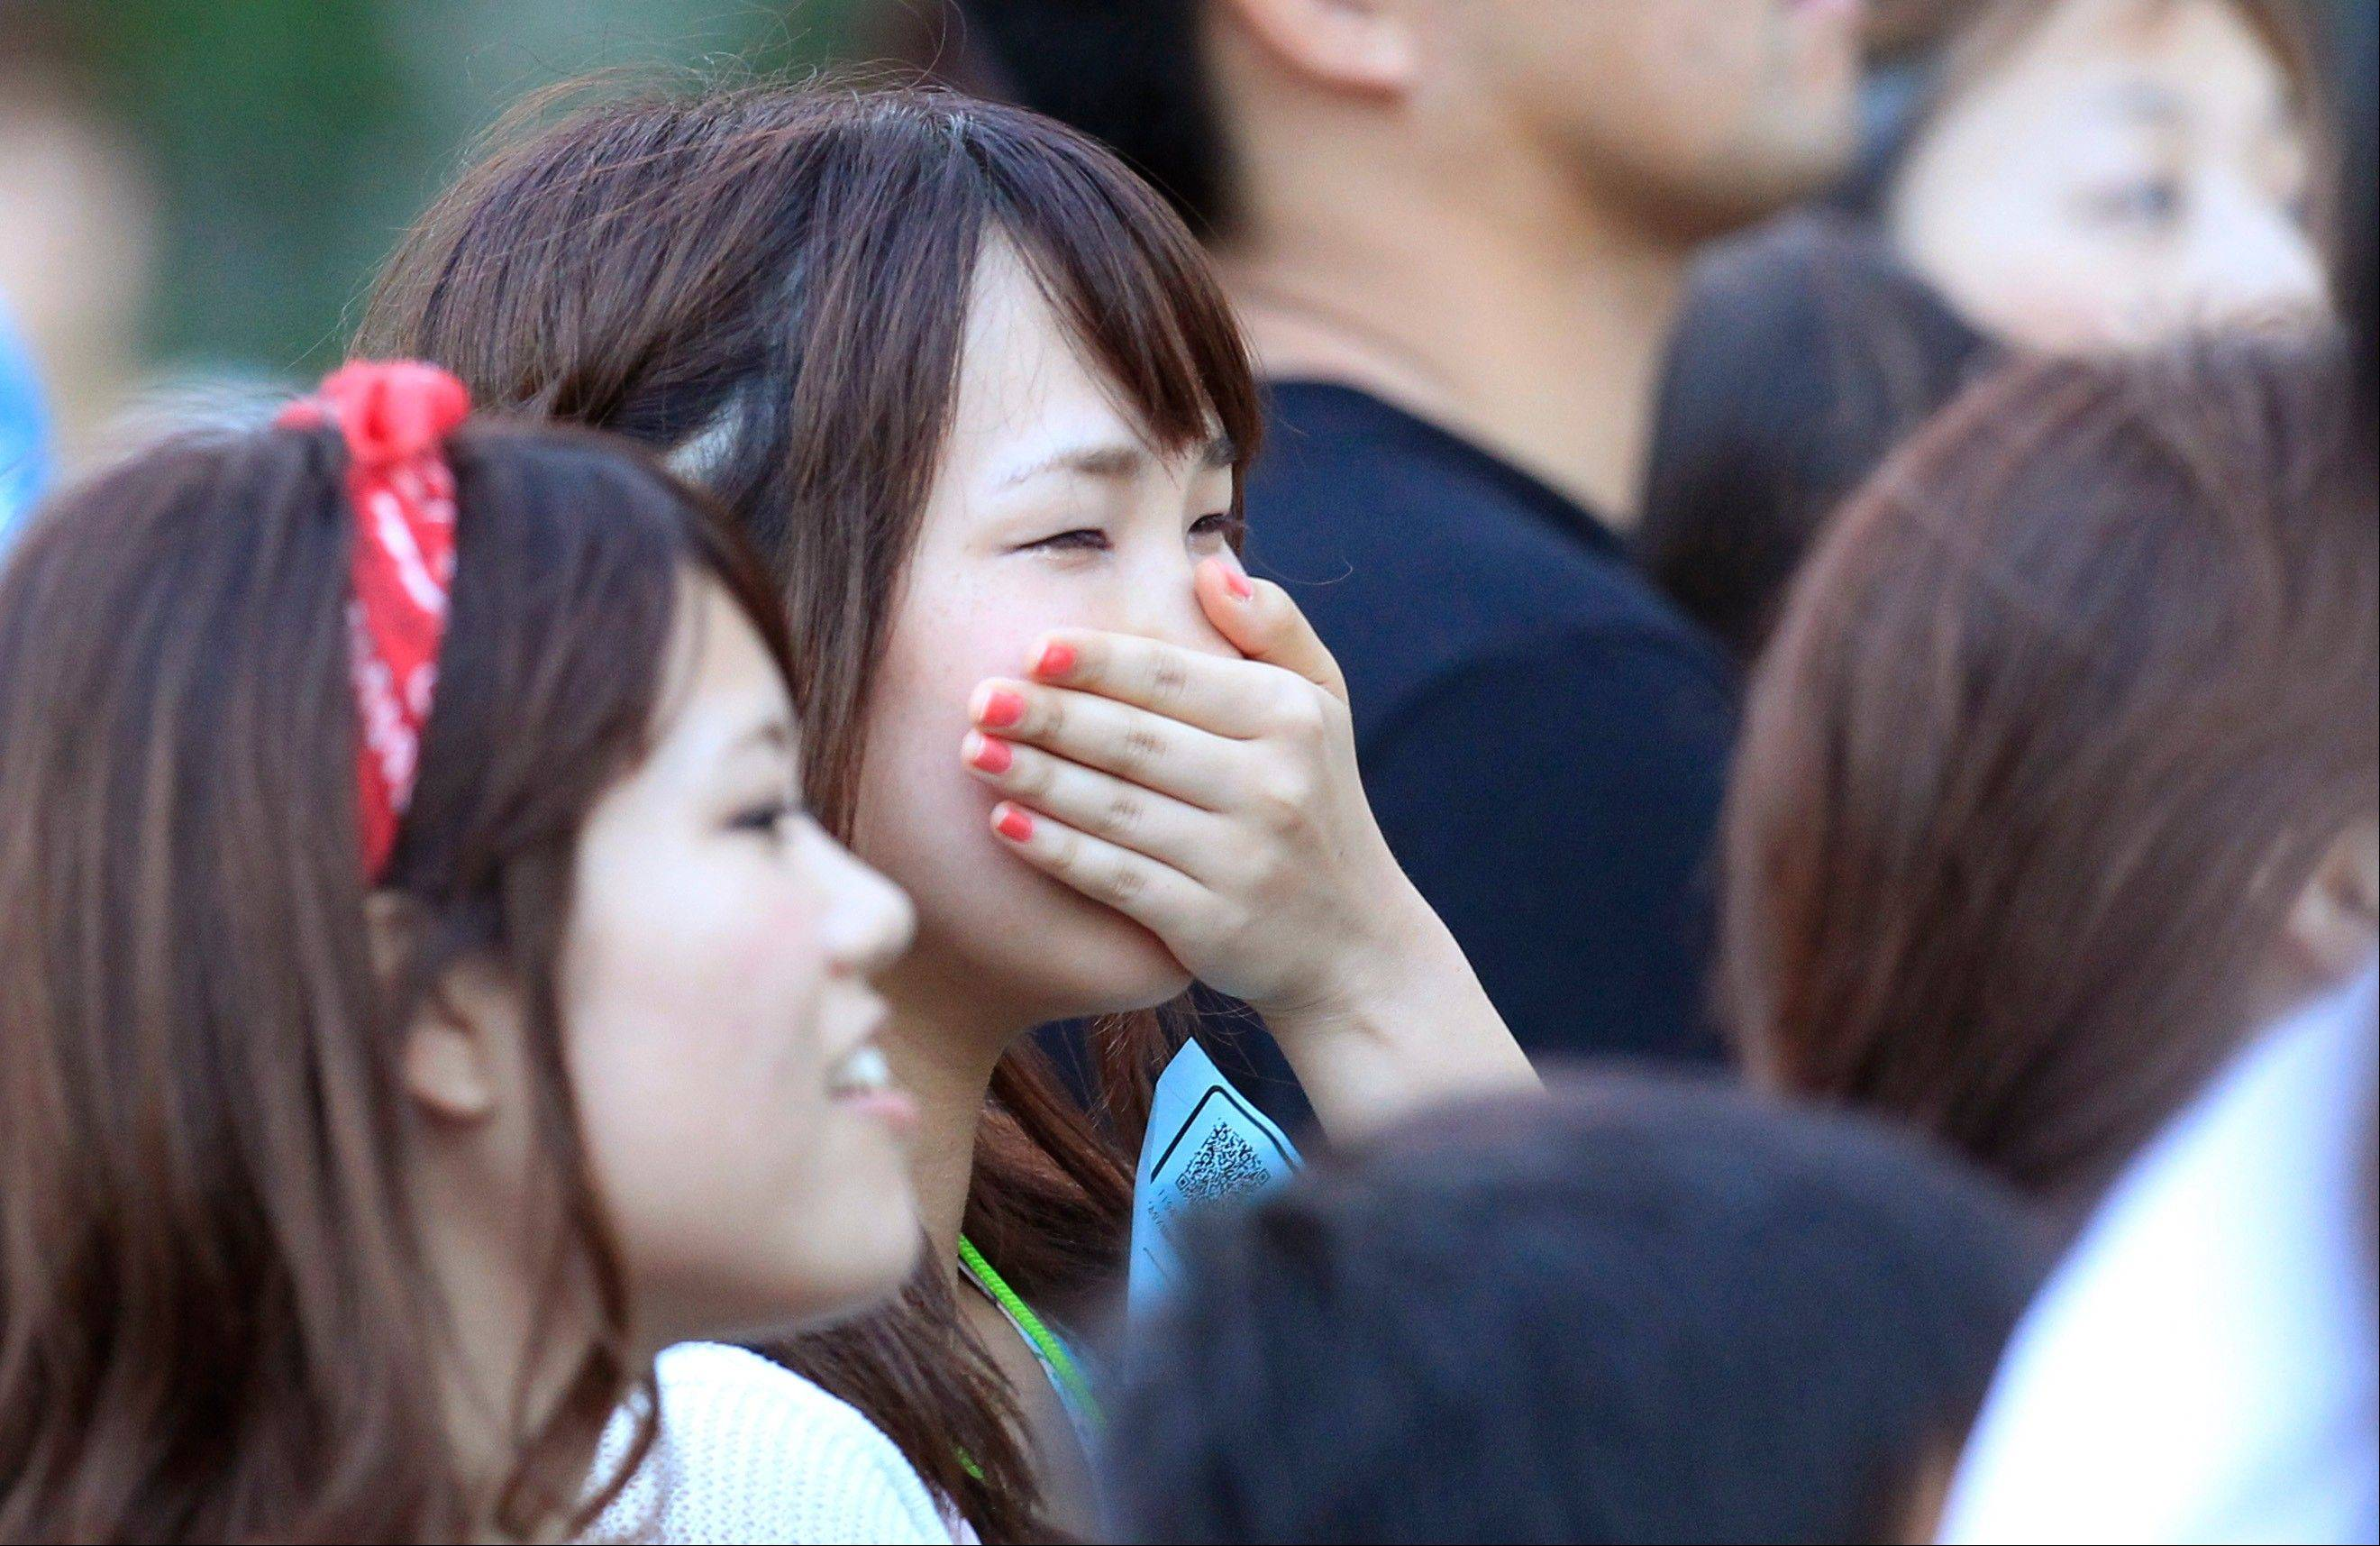 A woman is brought to tears listening to Chris Hart sing at an outdoor concert in Tokyo.